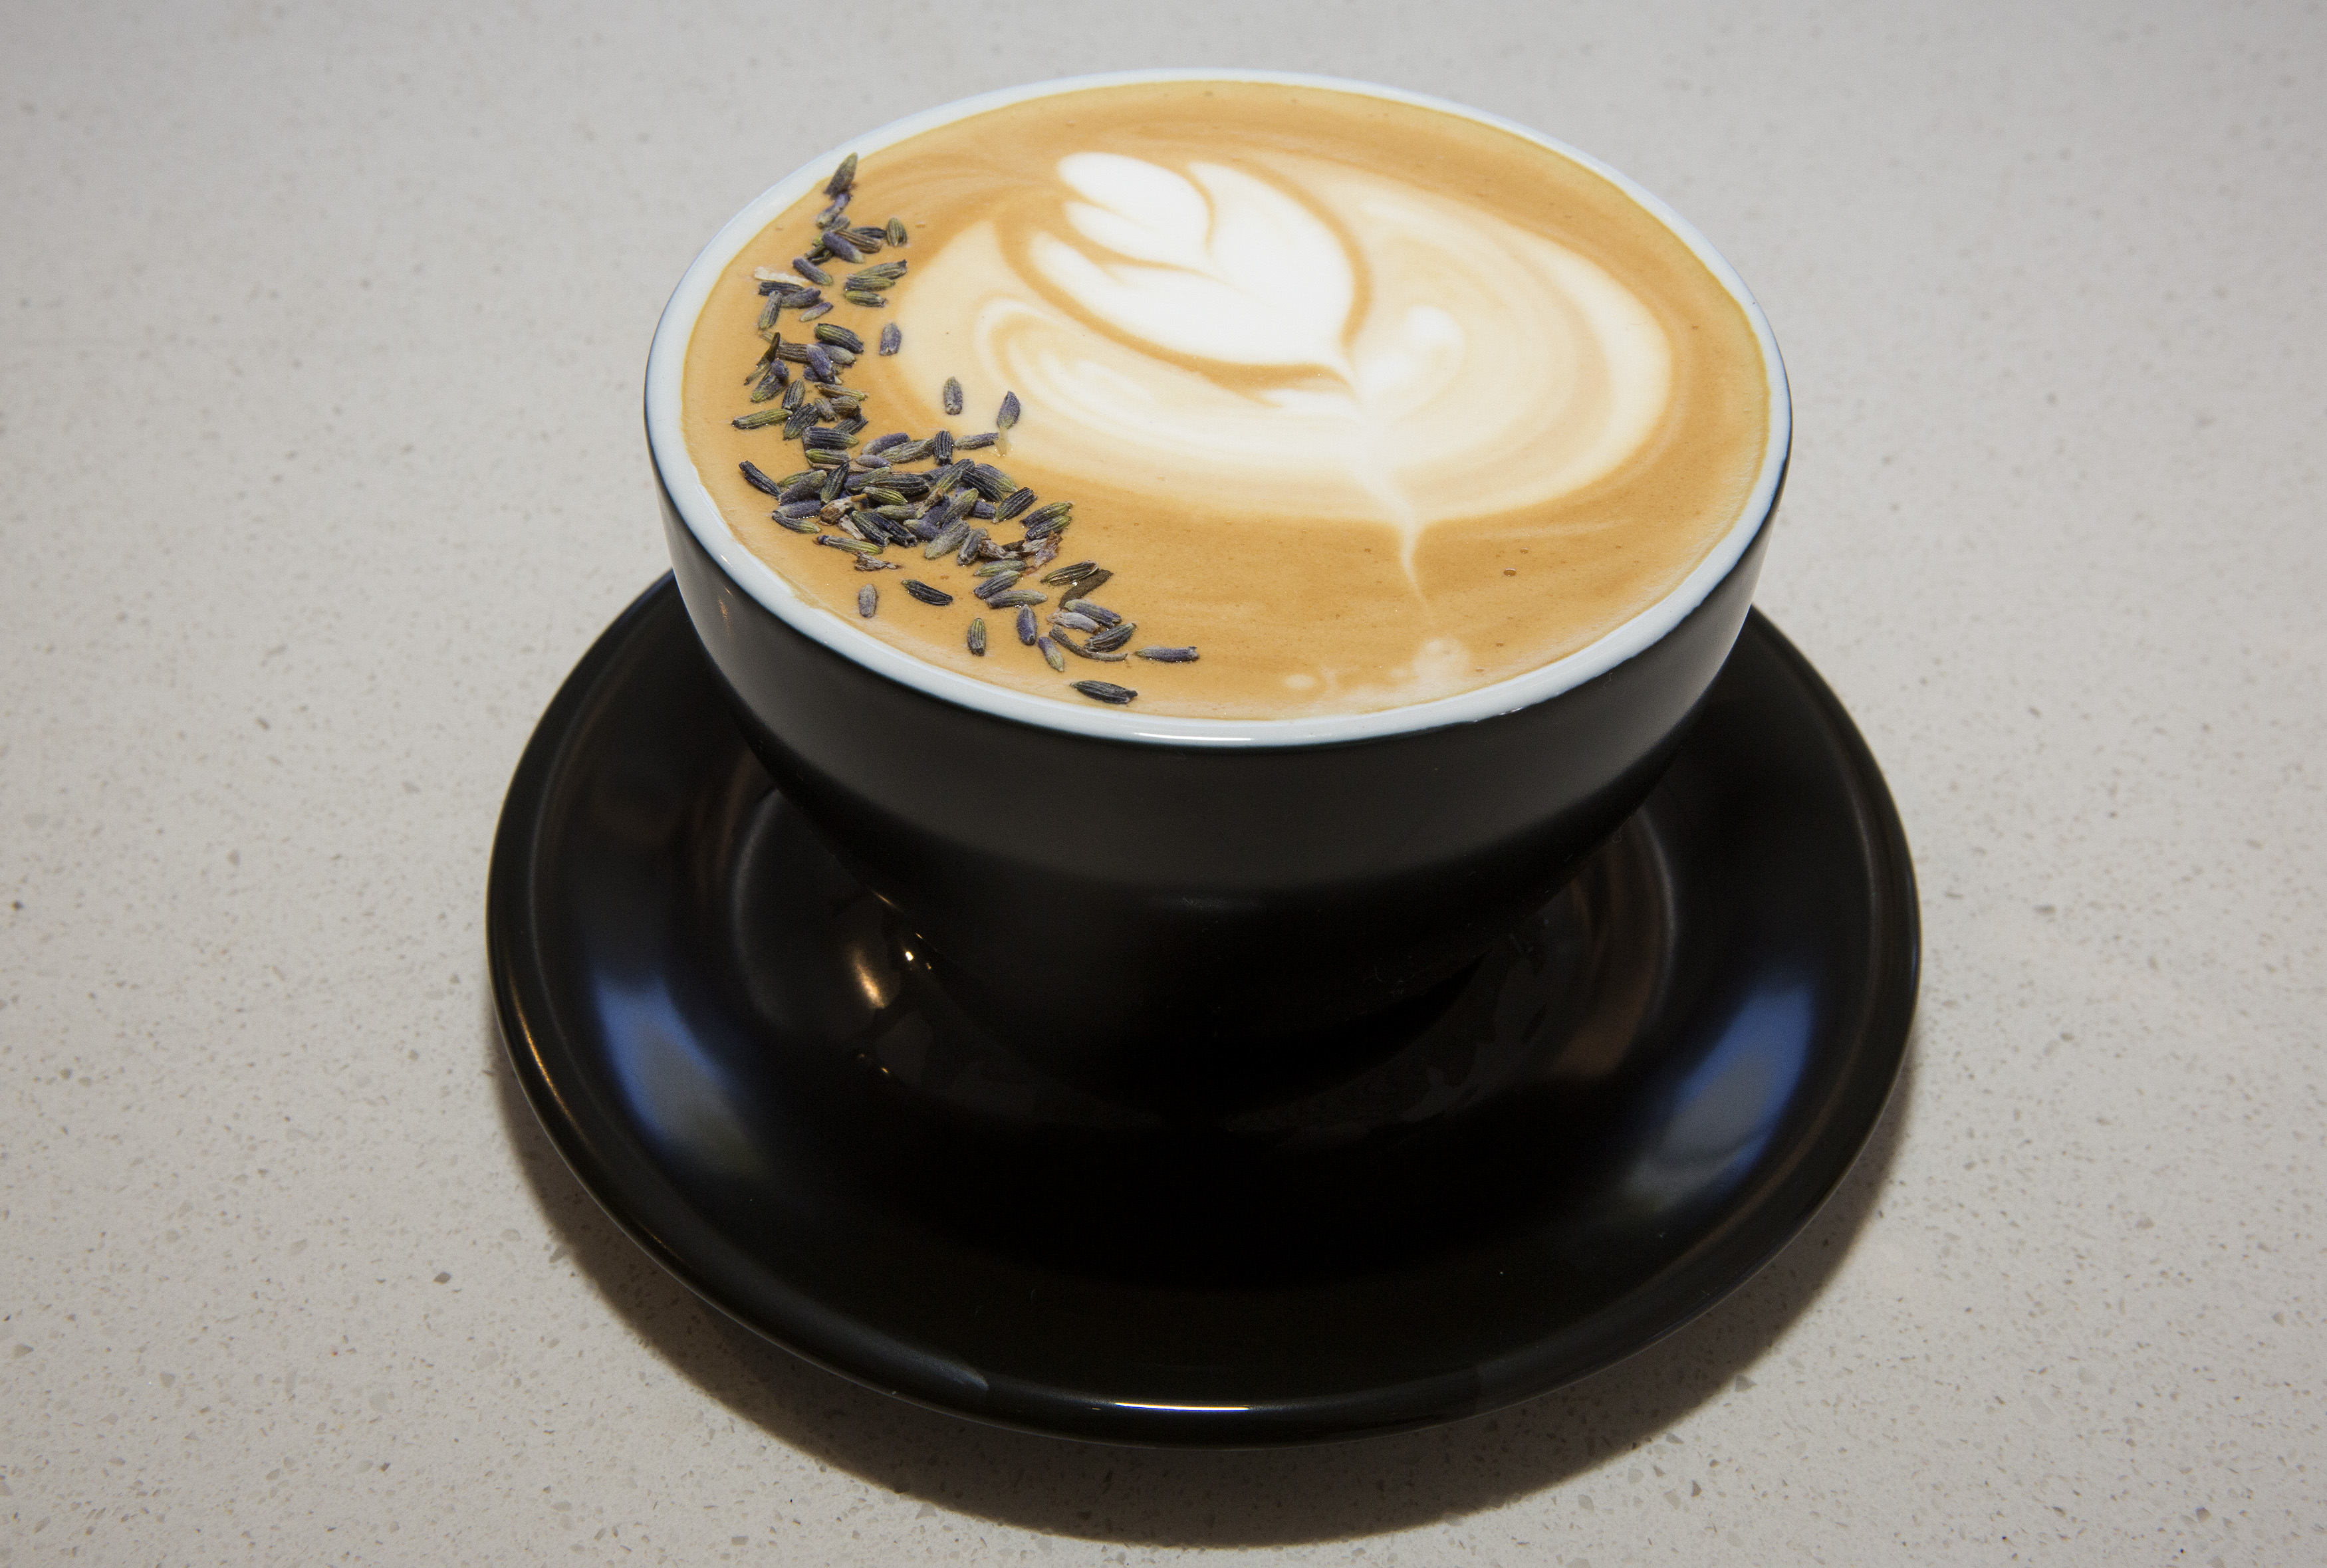 A hot coffee latte with dried lavender sprinkled on the head.